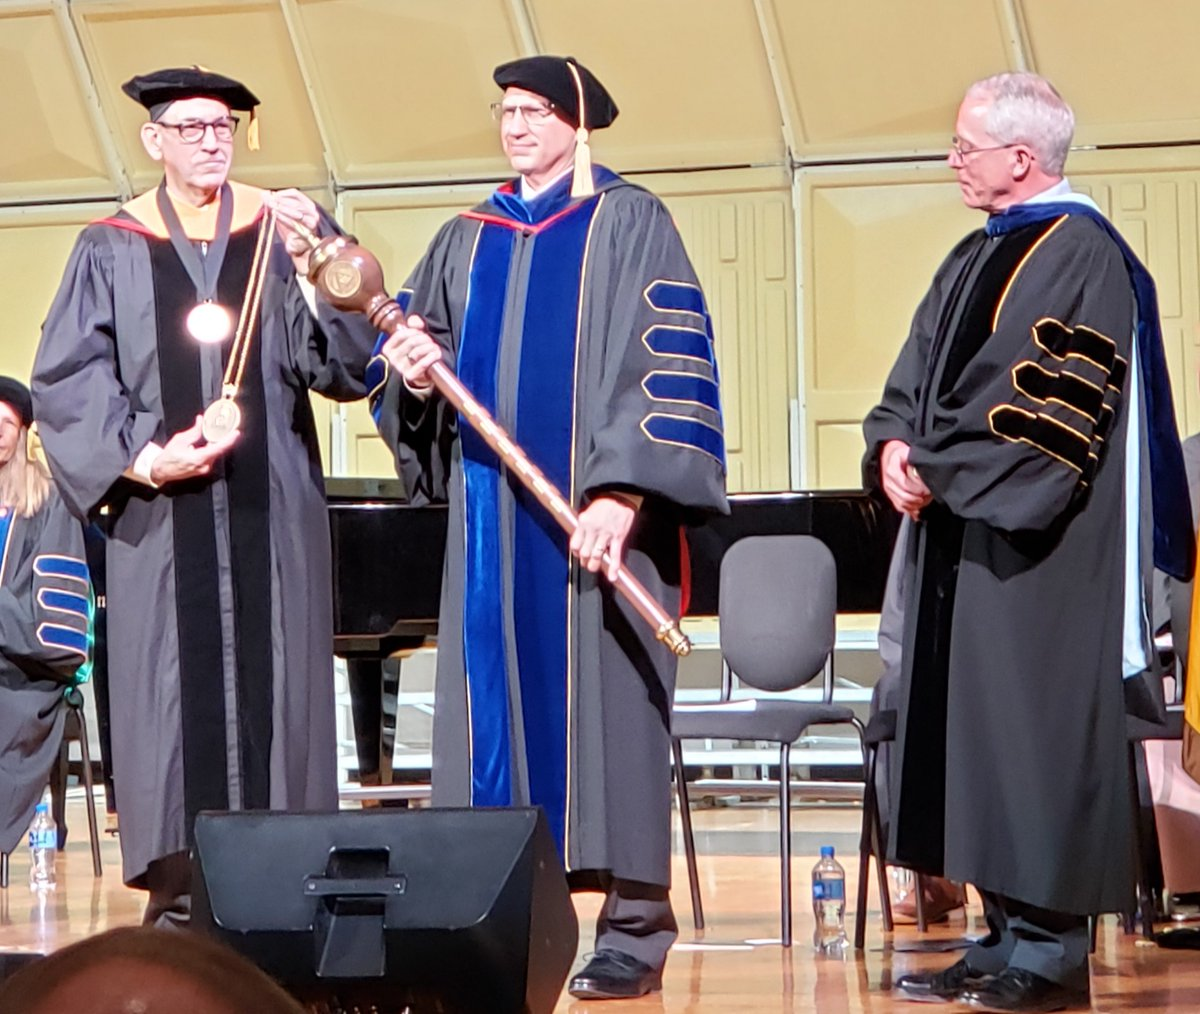 We are celebrating @NWU_President Dr. Darrin Good, who joined NWU one year ago today! This photo was taken at his Inauguration last October. #PWolfNation #YipYip https://t.co/A842RYzs5V